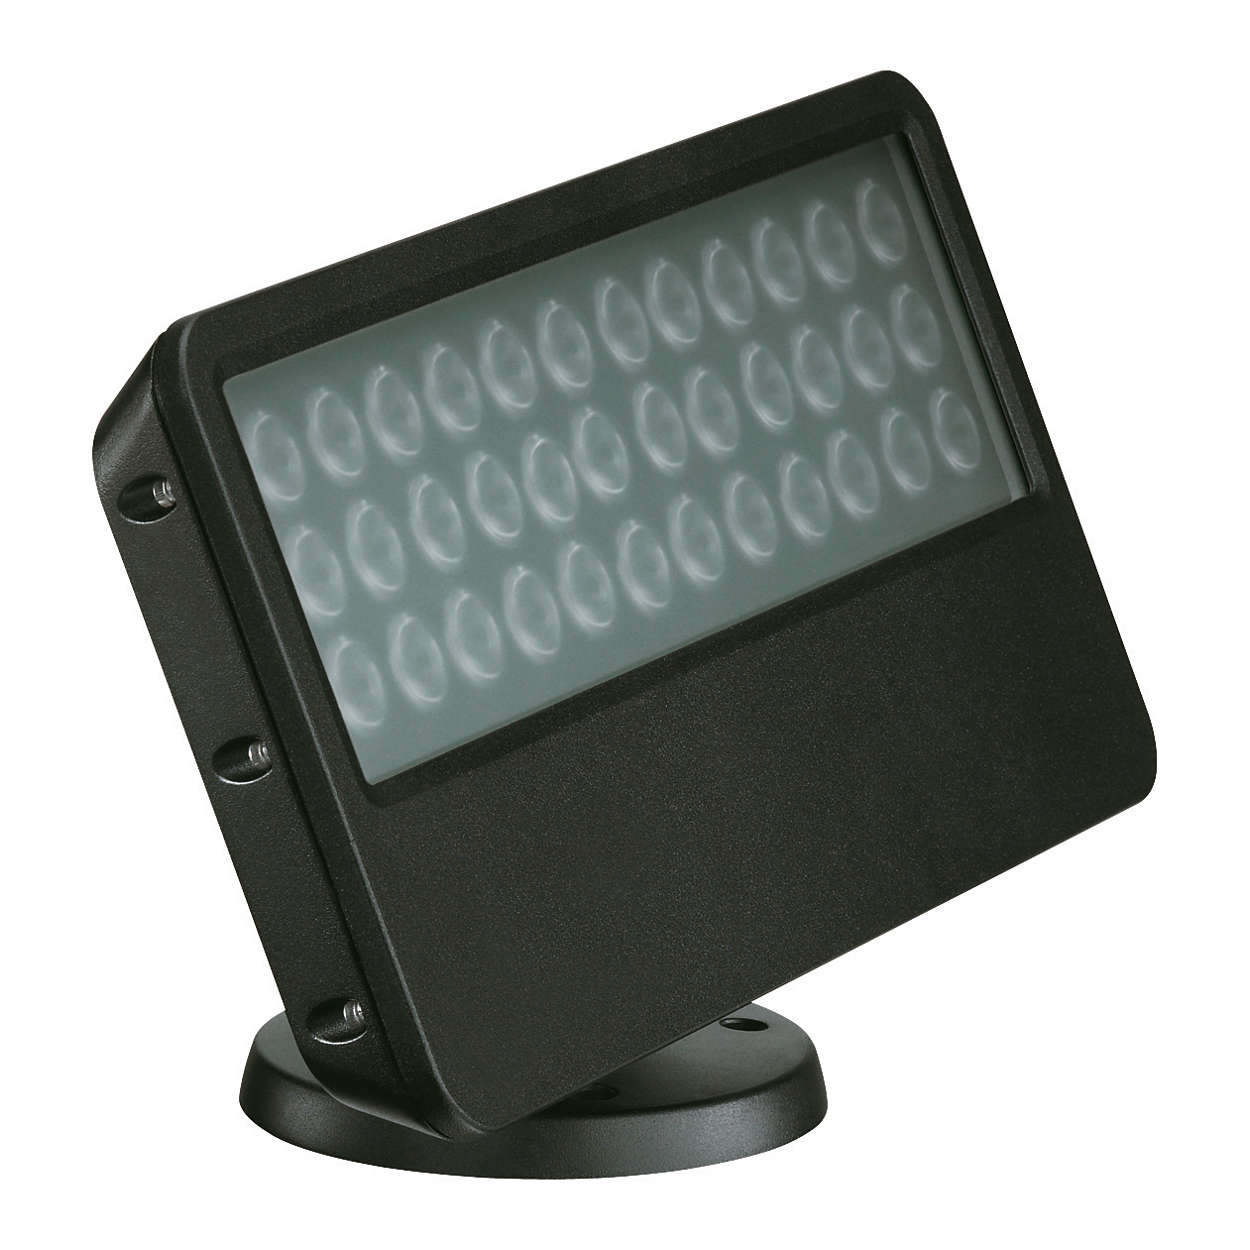 ColorBlast Powercore – vibrant, controllable color for interior and exterior architectural lighting